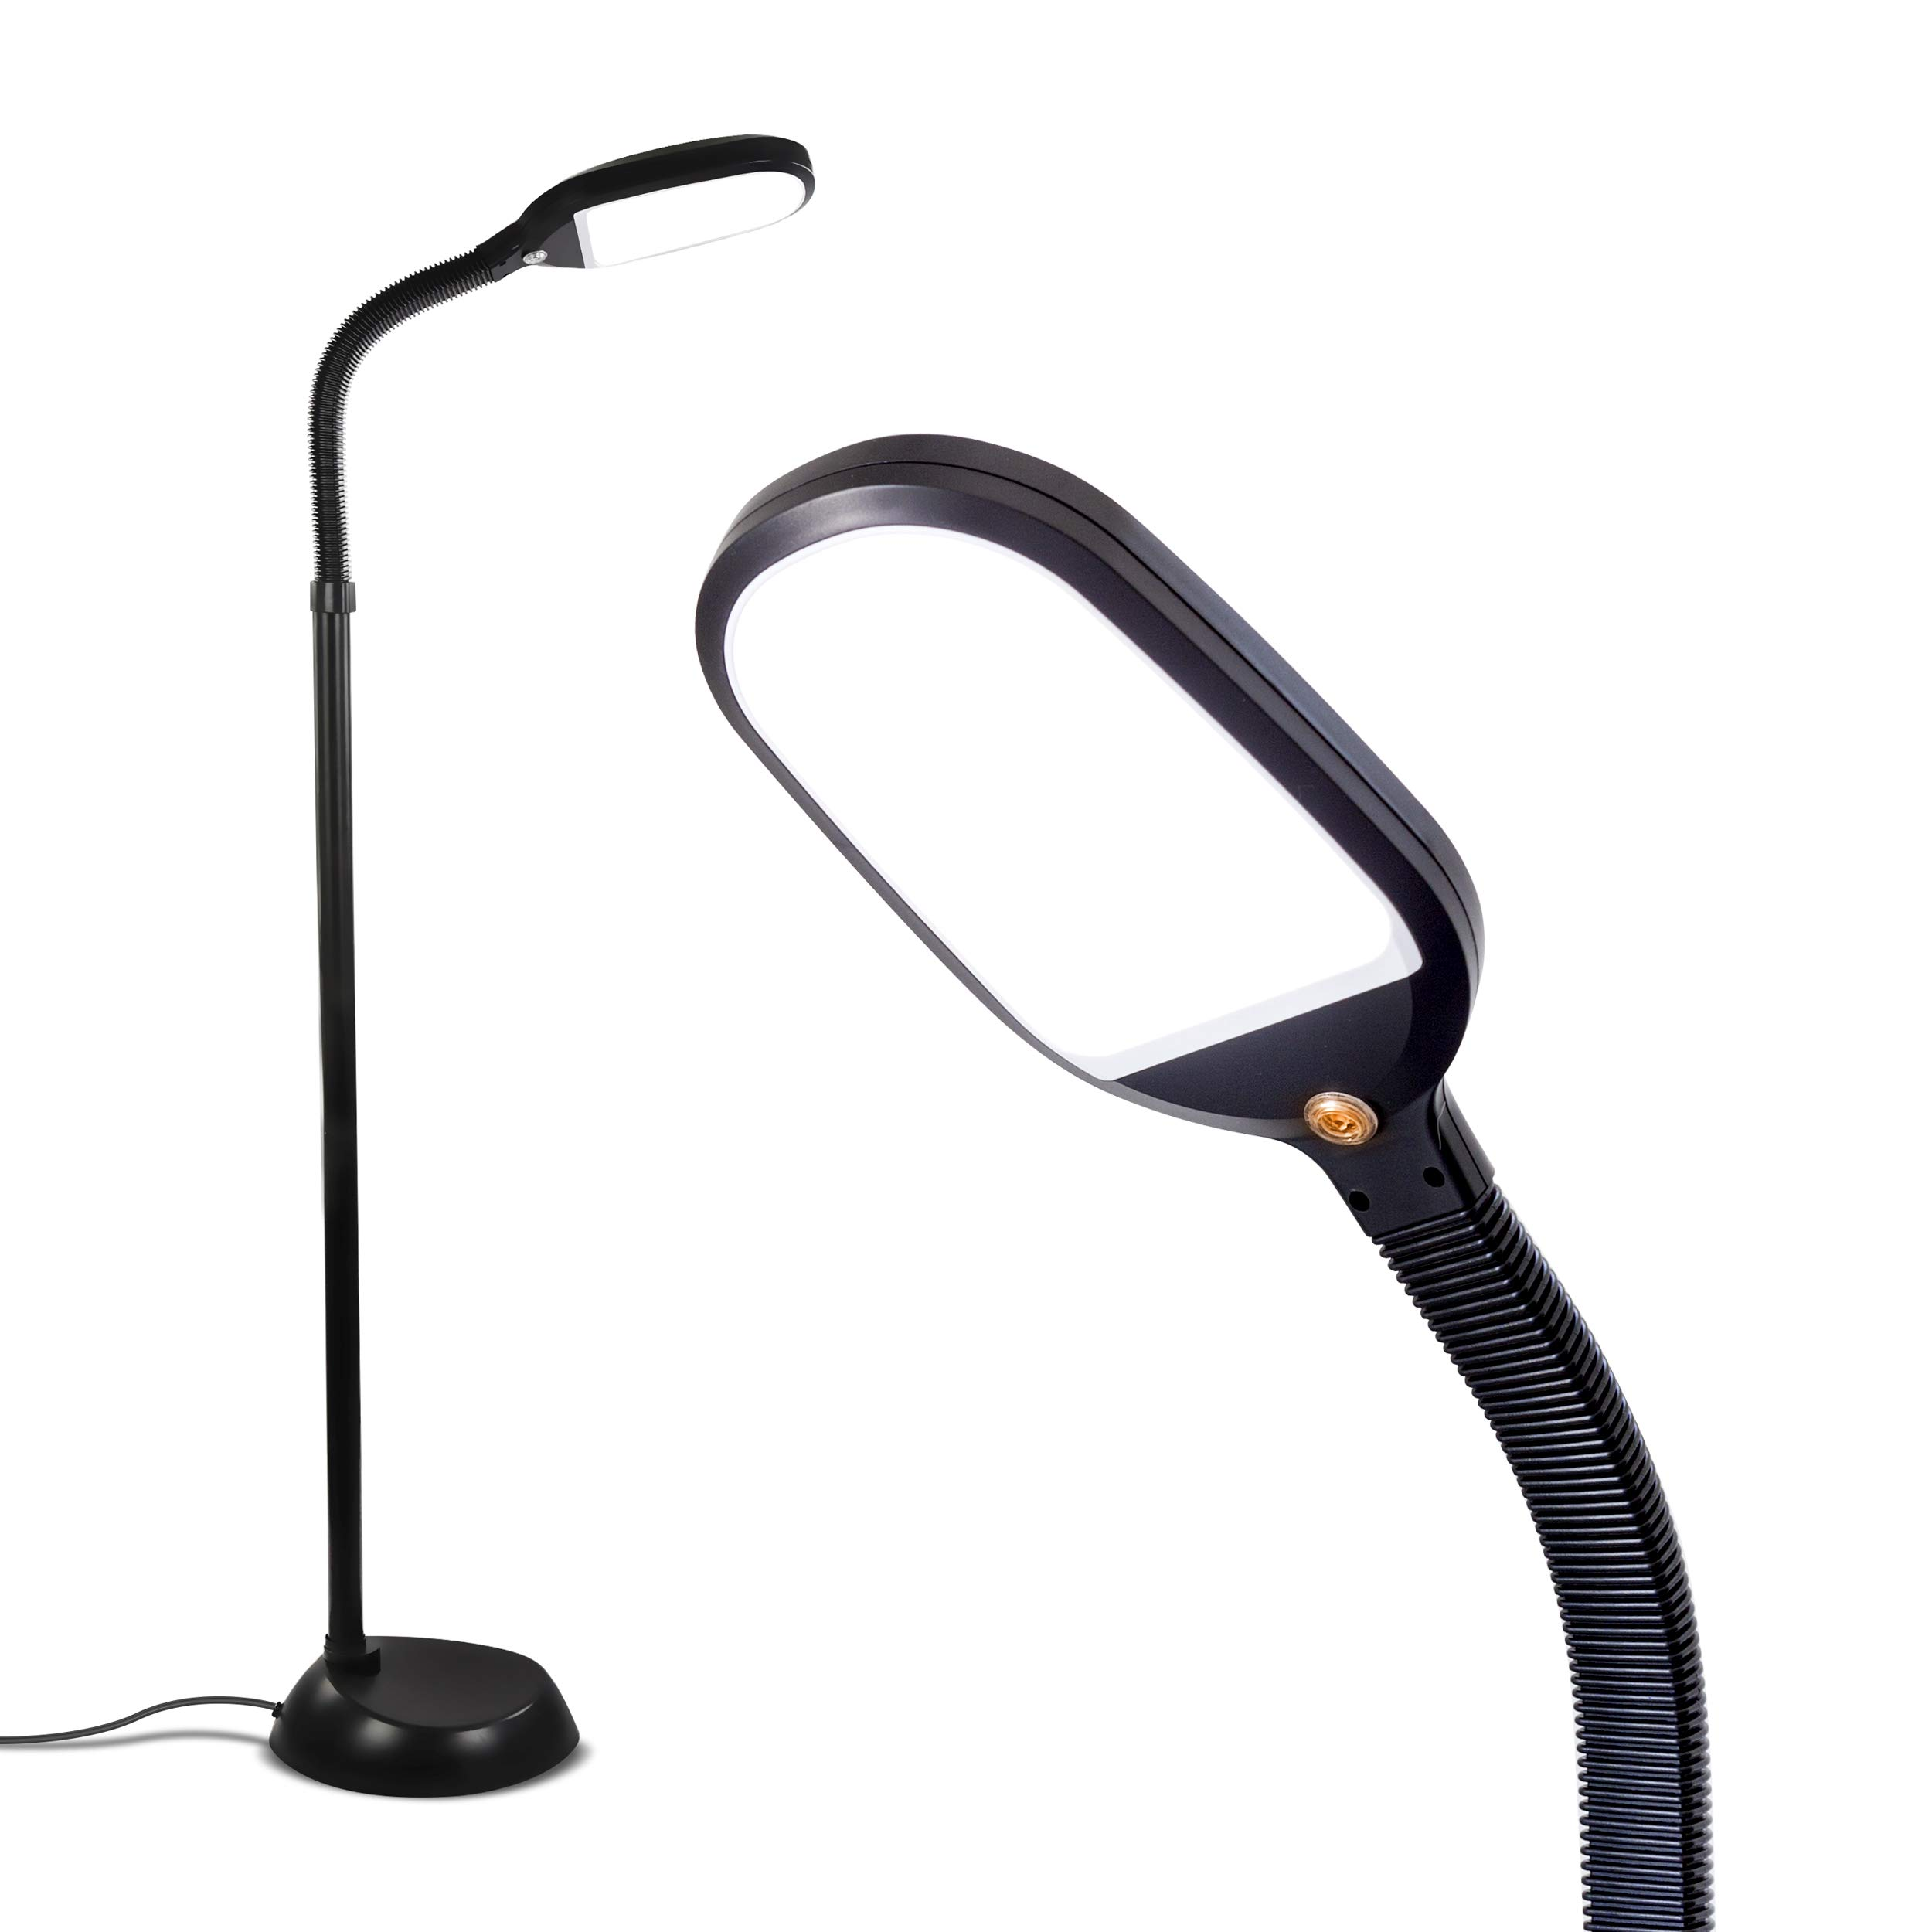 Brightech Litespan LED Bright Reading and Craft Floor Lamp - Modern Standing Pole Light - Dimmable, Adjustable Gooseneck Task Lighting Great in Sewing Rooms, Bedrooms - Black... by Brightech